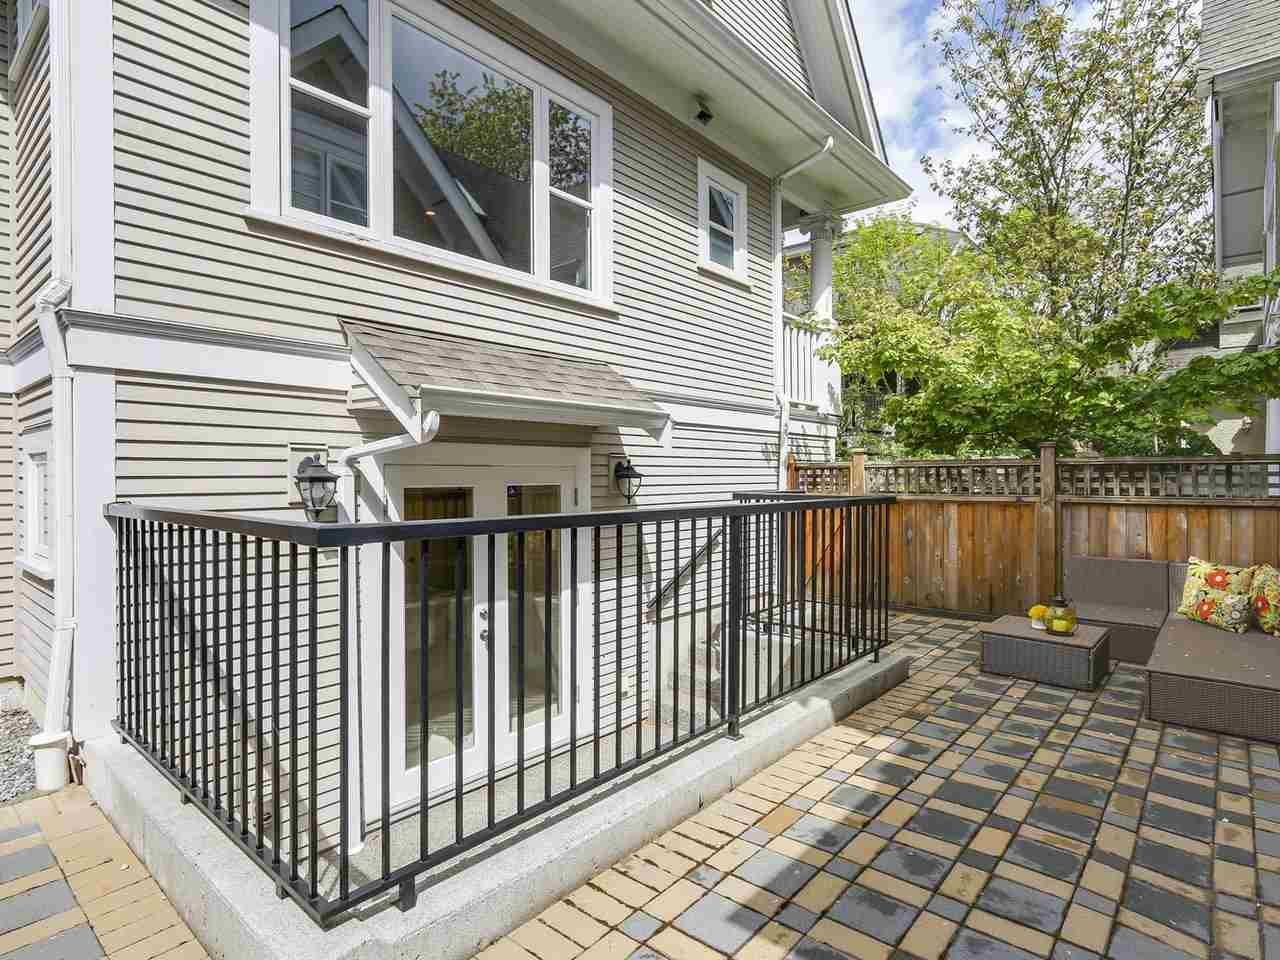 South facing, access off the lower level or ground level of the property, great space waiting for your ideas - potted plants, outdoor lighting, BBQ and outdoor furniture. Fenced perfect for your pets or small children.